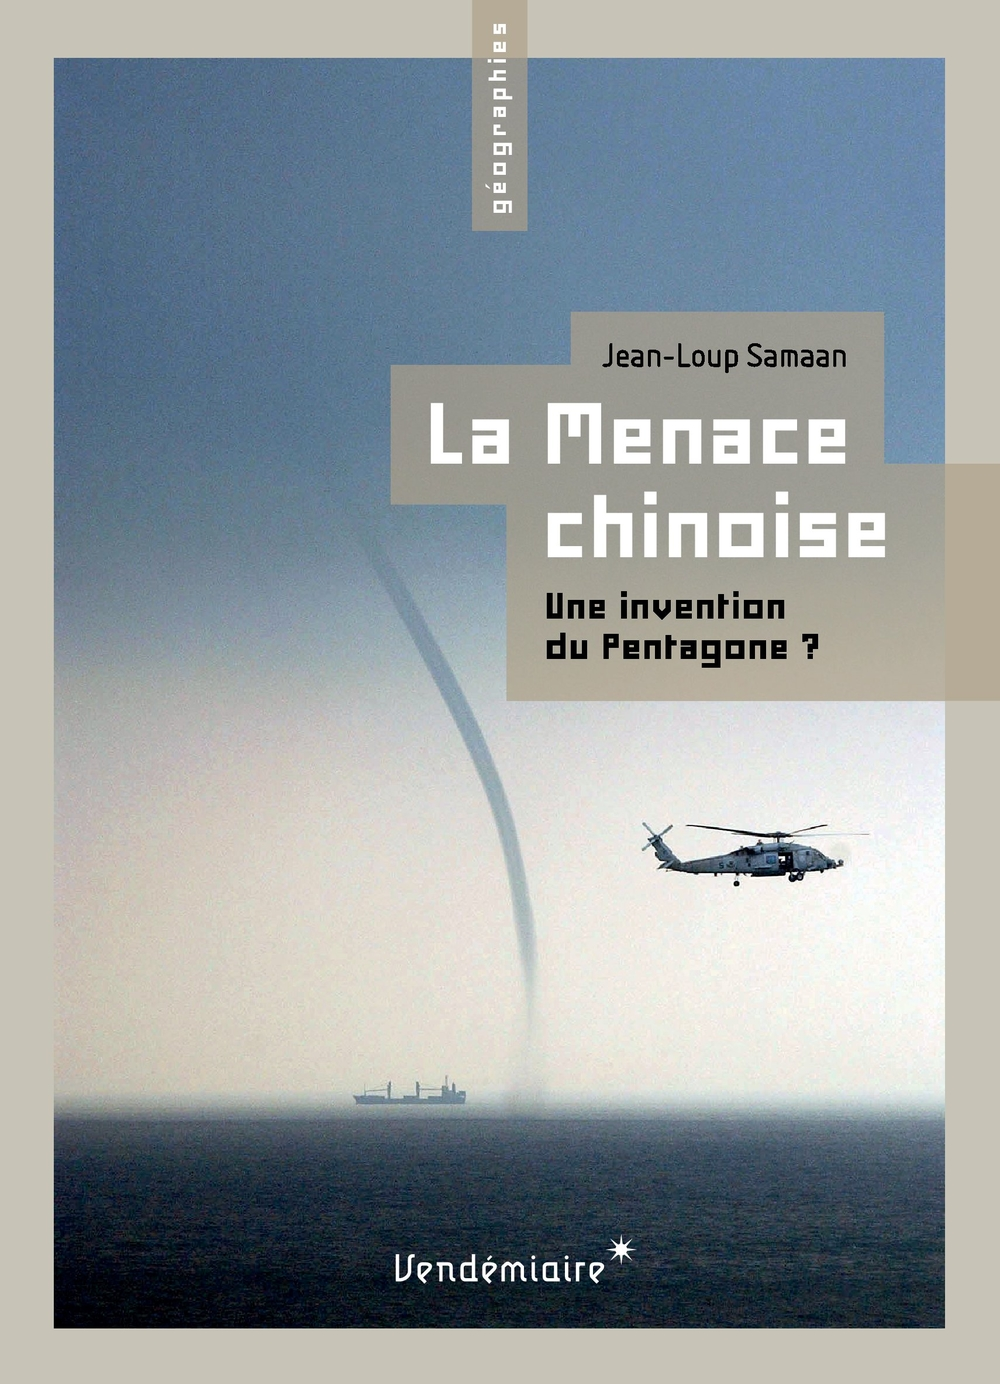 La Menace chinoise